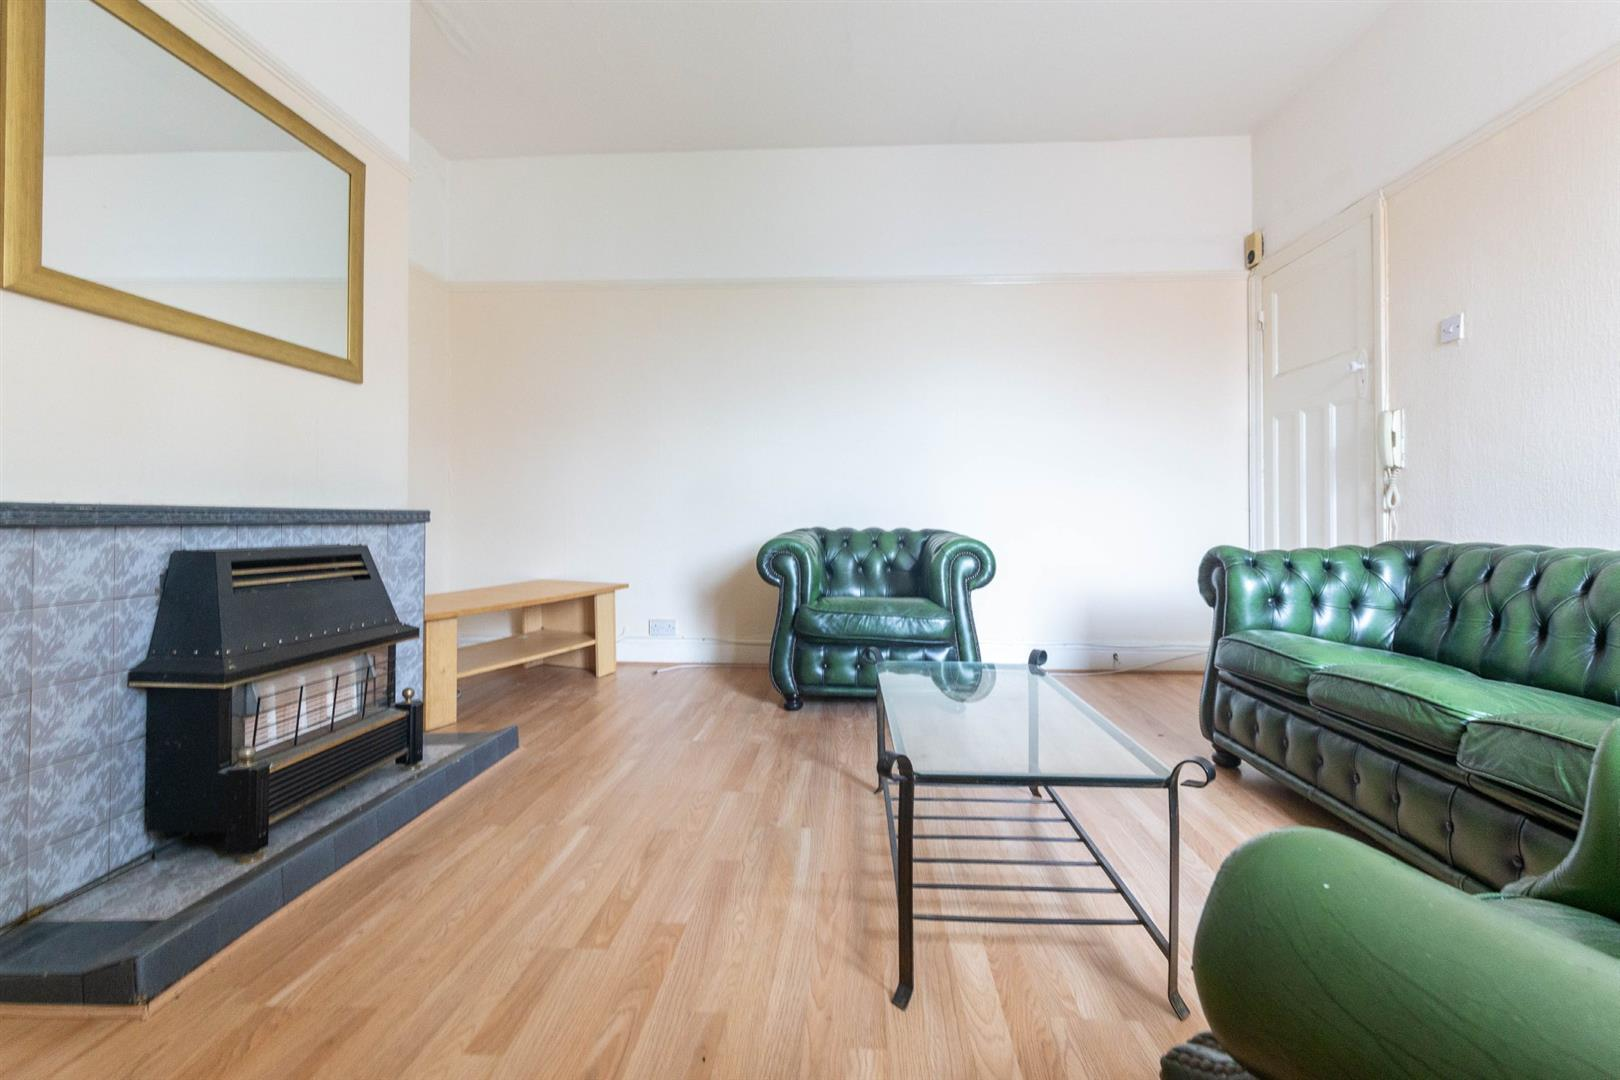 2 bed flat to rent in Newcastle Upon Tyne, NE6 5SQ - Property Image 1